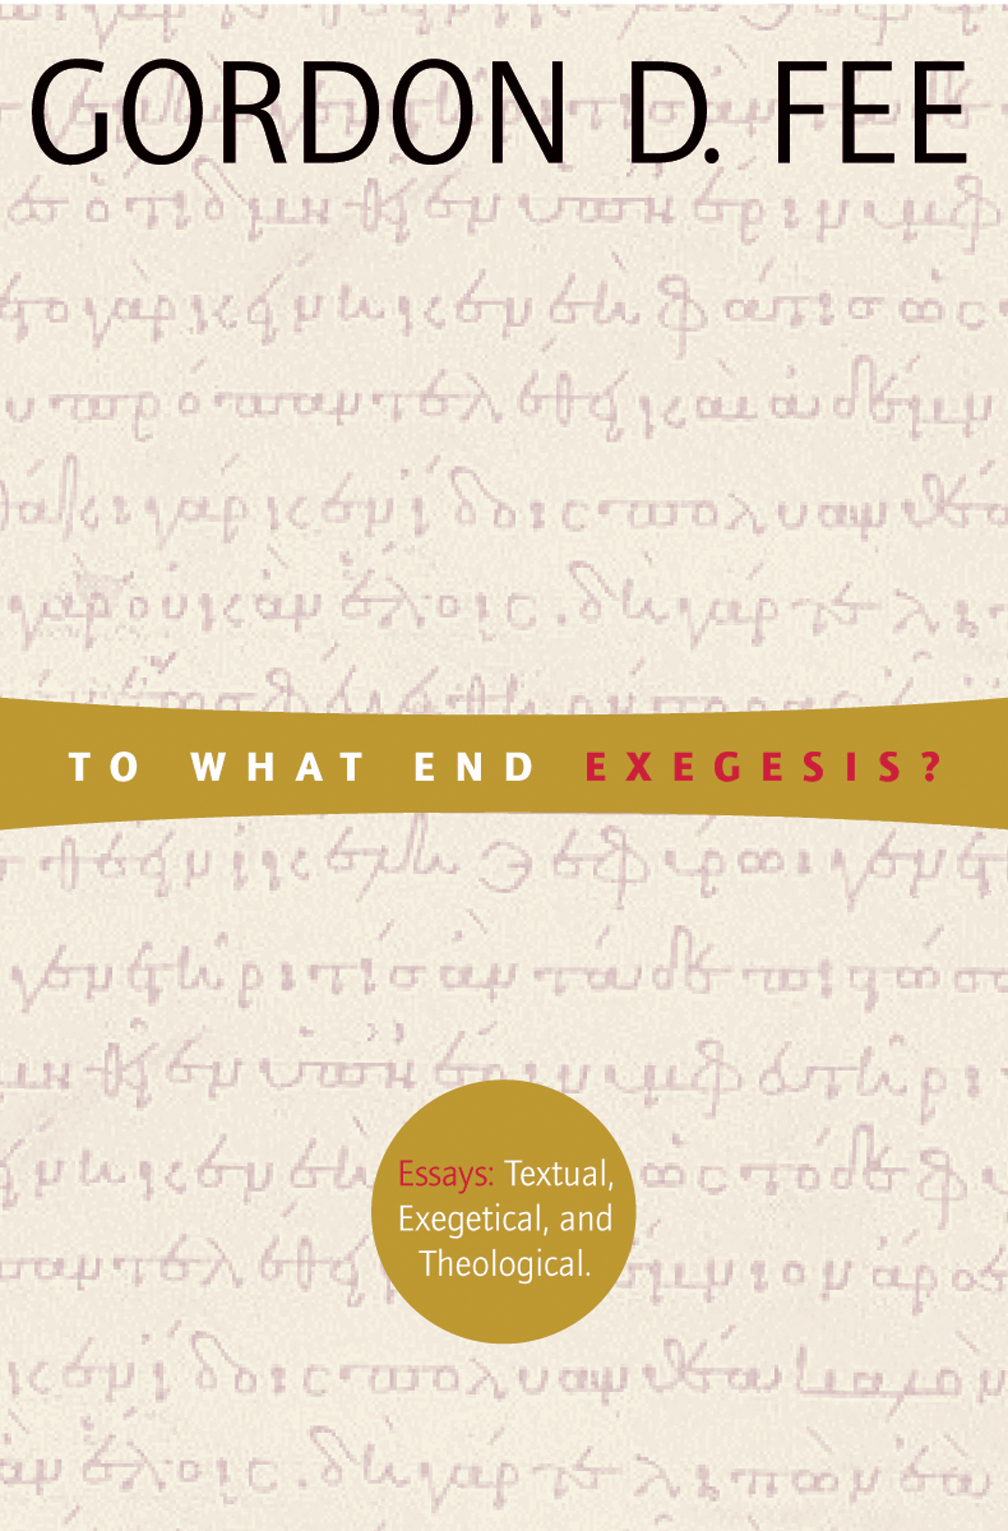 writing exegesis essay Below is an essay on exegesis from anti essays, your source for research papers, essays, and term paper examples exegesis of the good samaritan, luke 10:29-37 by hiwot araya.